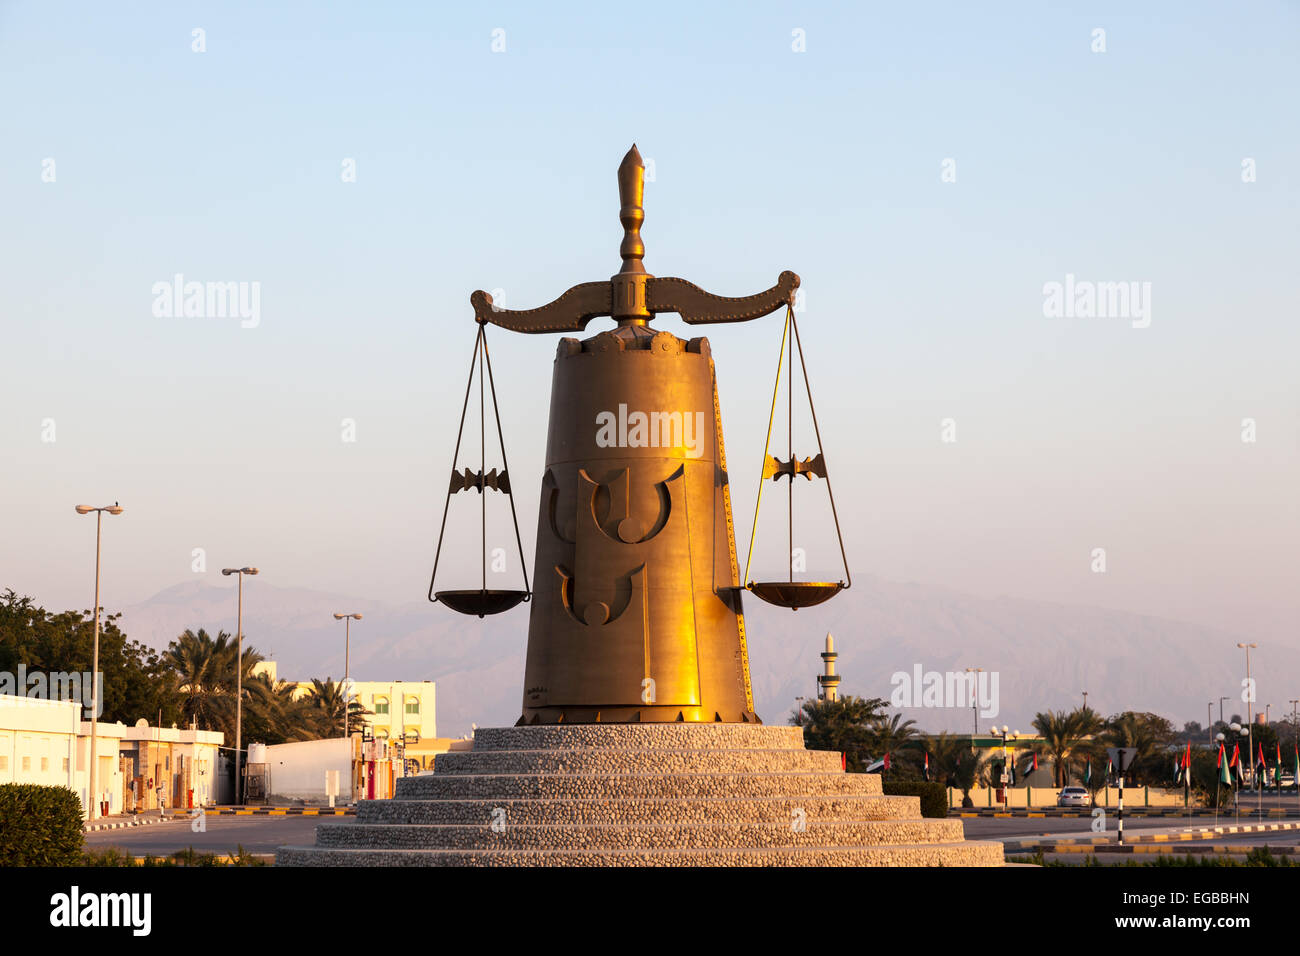 Roundabout with scales of justice statue in Ras Al Khaimah - Stock Image